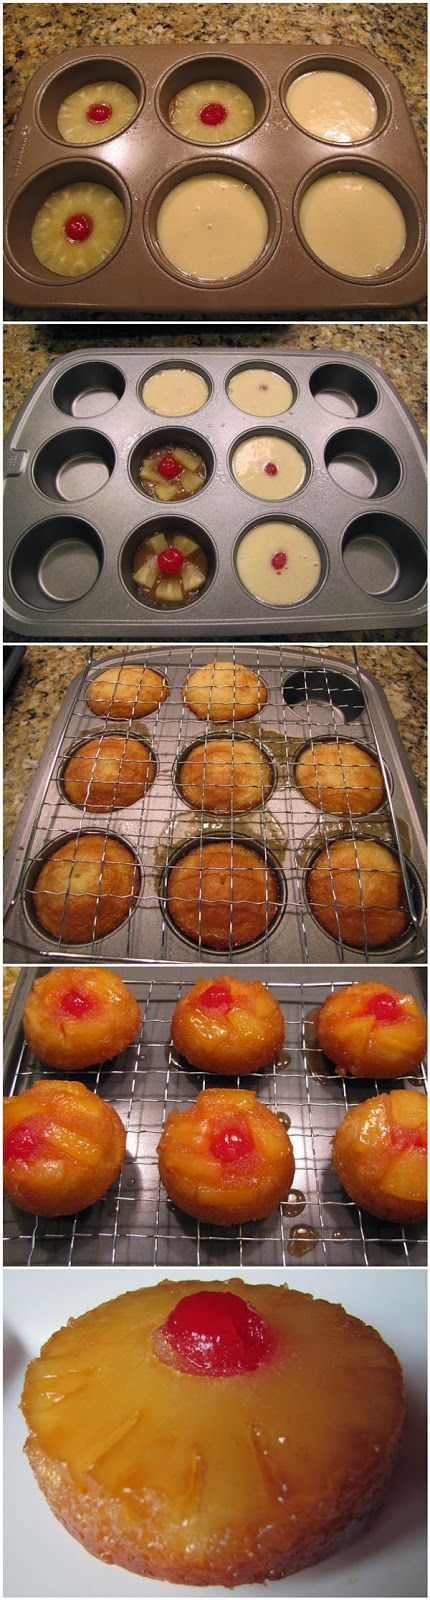 Pineapple Upside Down Mini Cakes ~ The pineapple upside down mini cakes are just as simple to make as the original, and they feature lots of yumminess.